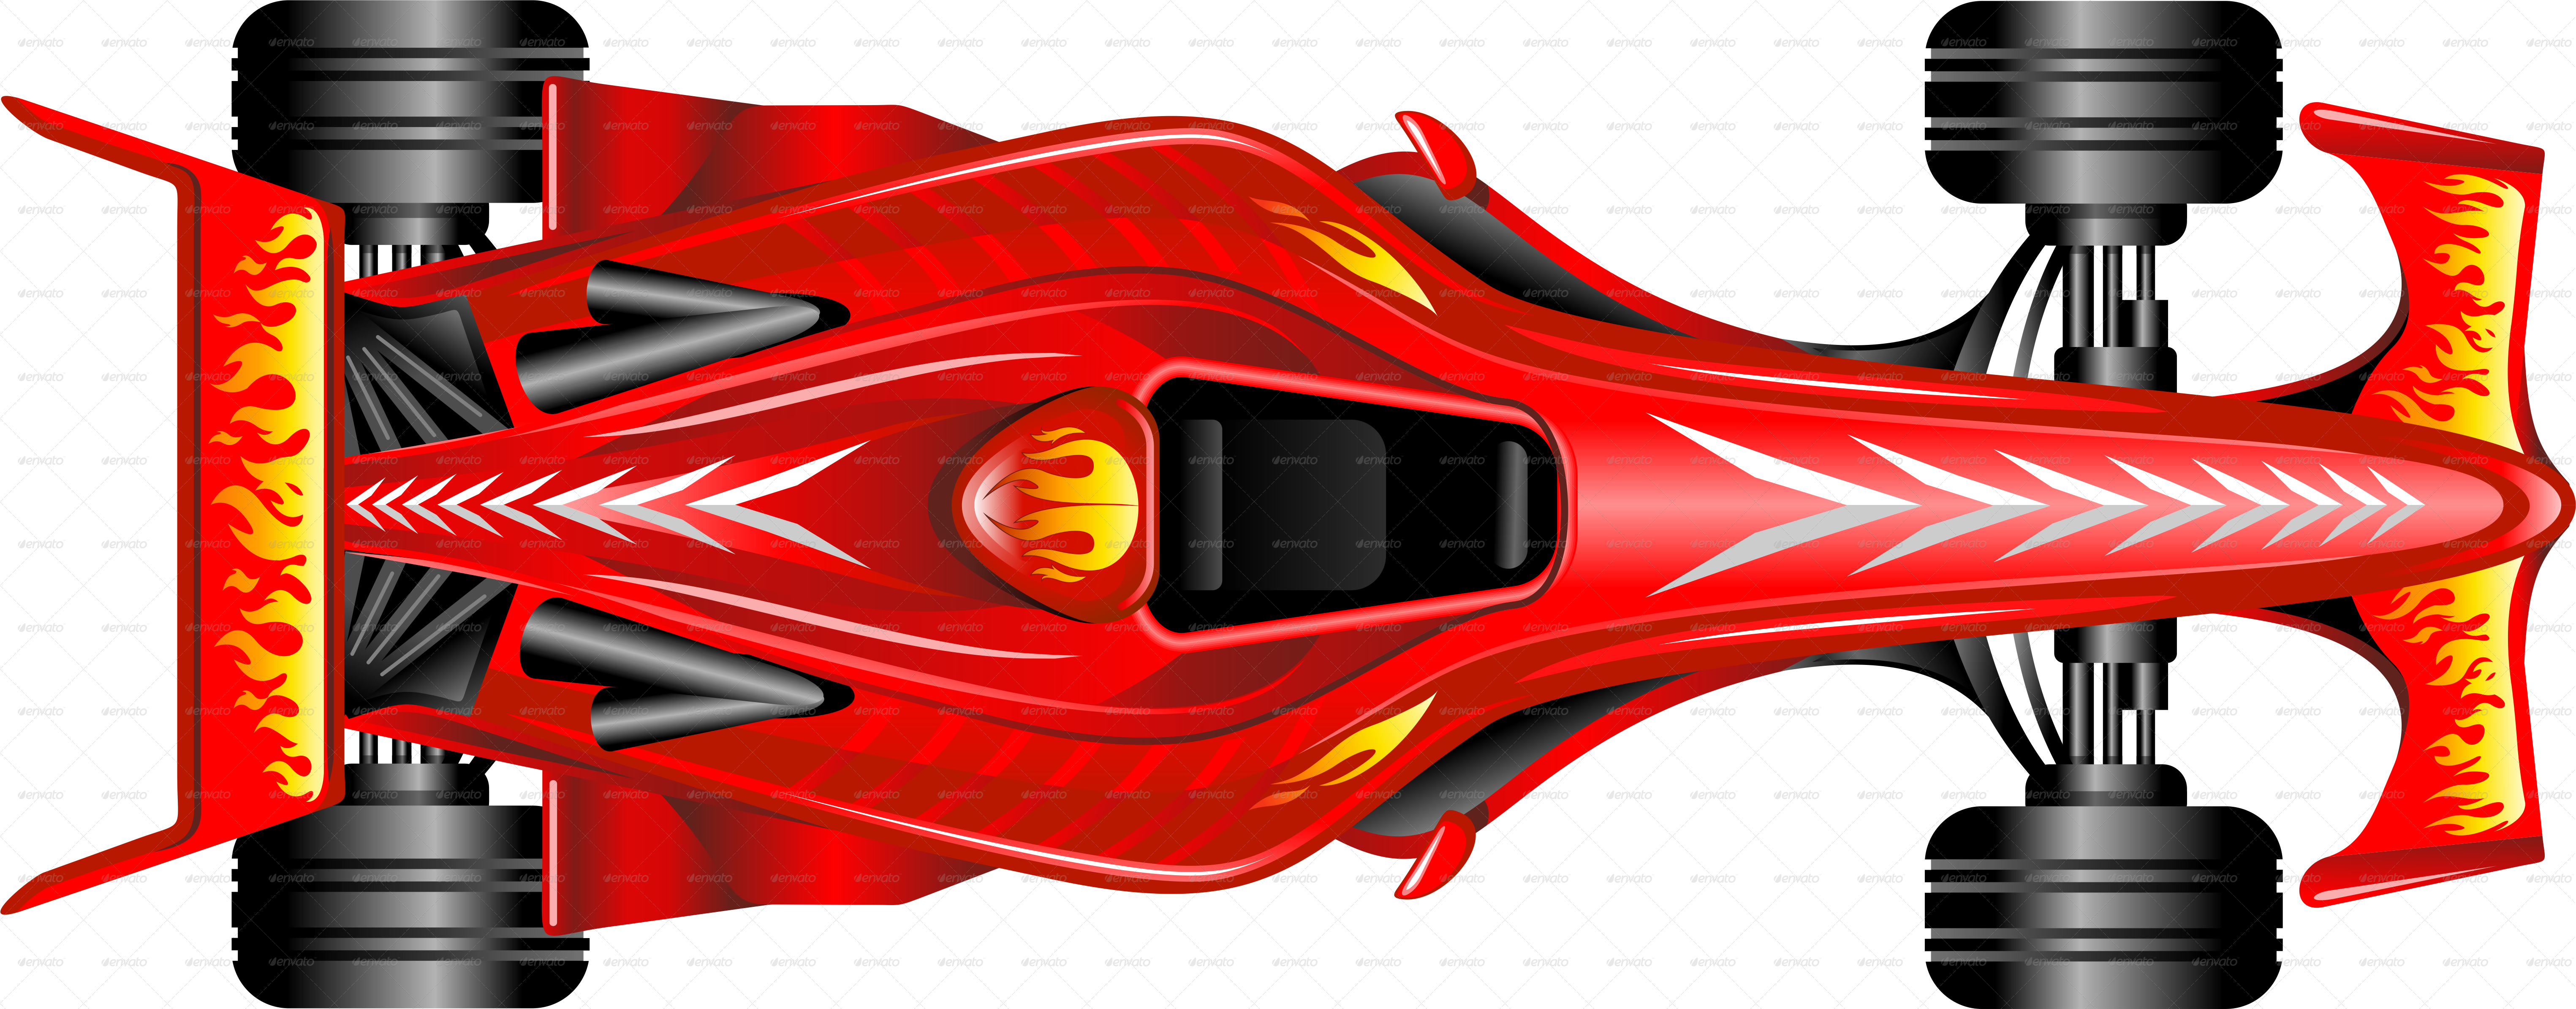 Formula Red Race Car On Checkered Background By Bluedarkat